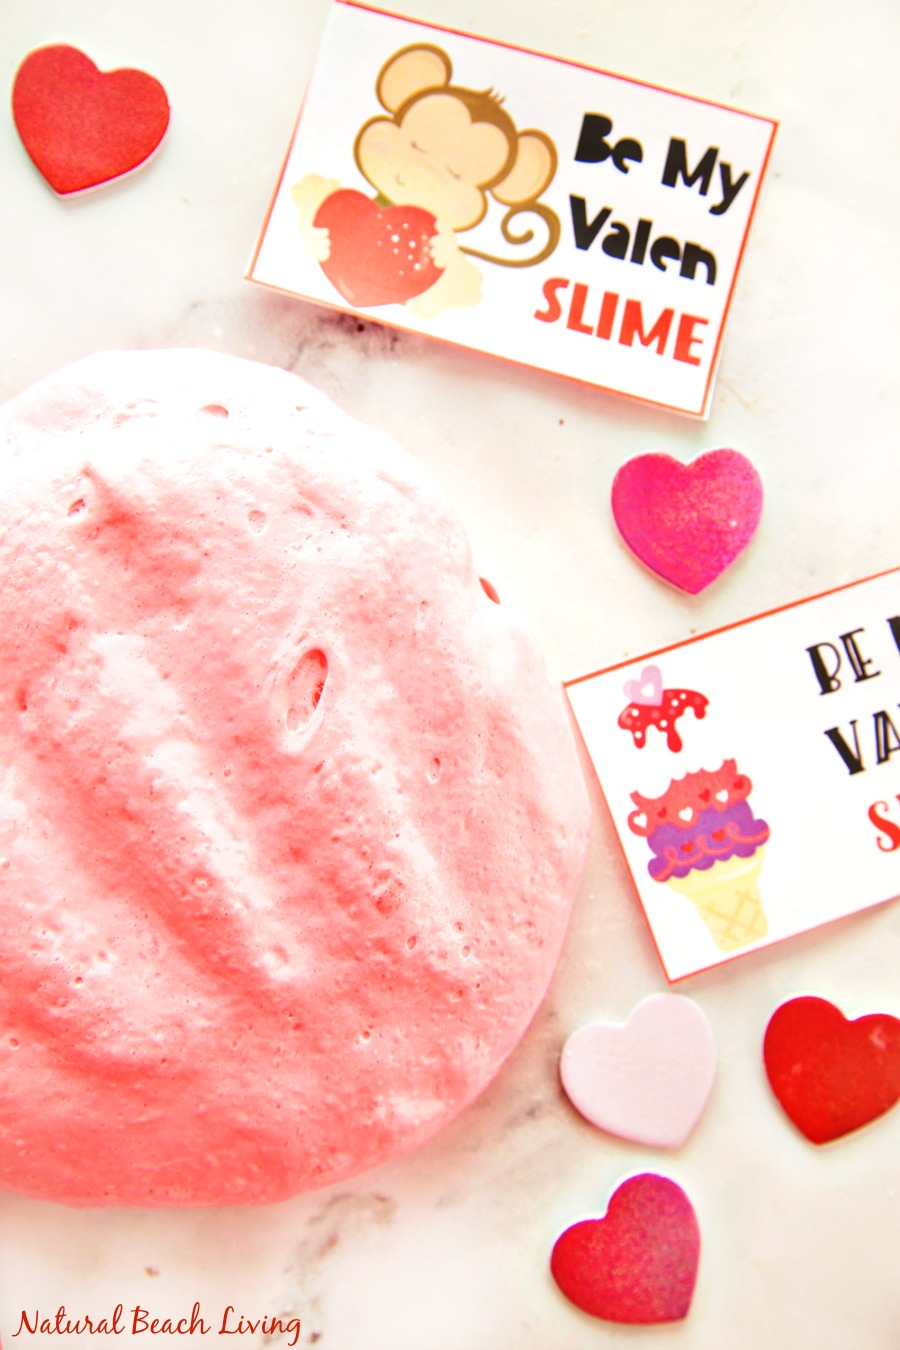 The Best February Preschool Activities and Themes for Preschool, fun Valentine's Day hands-on activities, heart crafts, Valentine's Day STEM, filling your calendar with random acts of kindness ideas, groundhog day preschool, This page is filled with great preschool activities and themes, February Themes for Kindergarten, February Theme Ideas